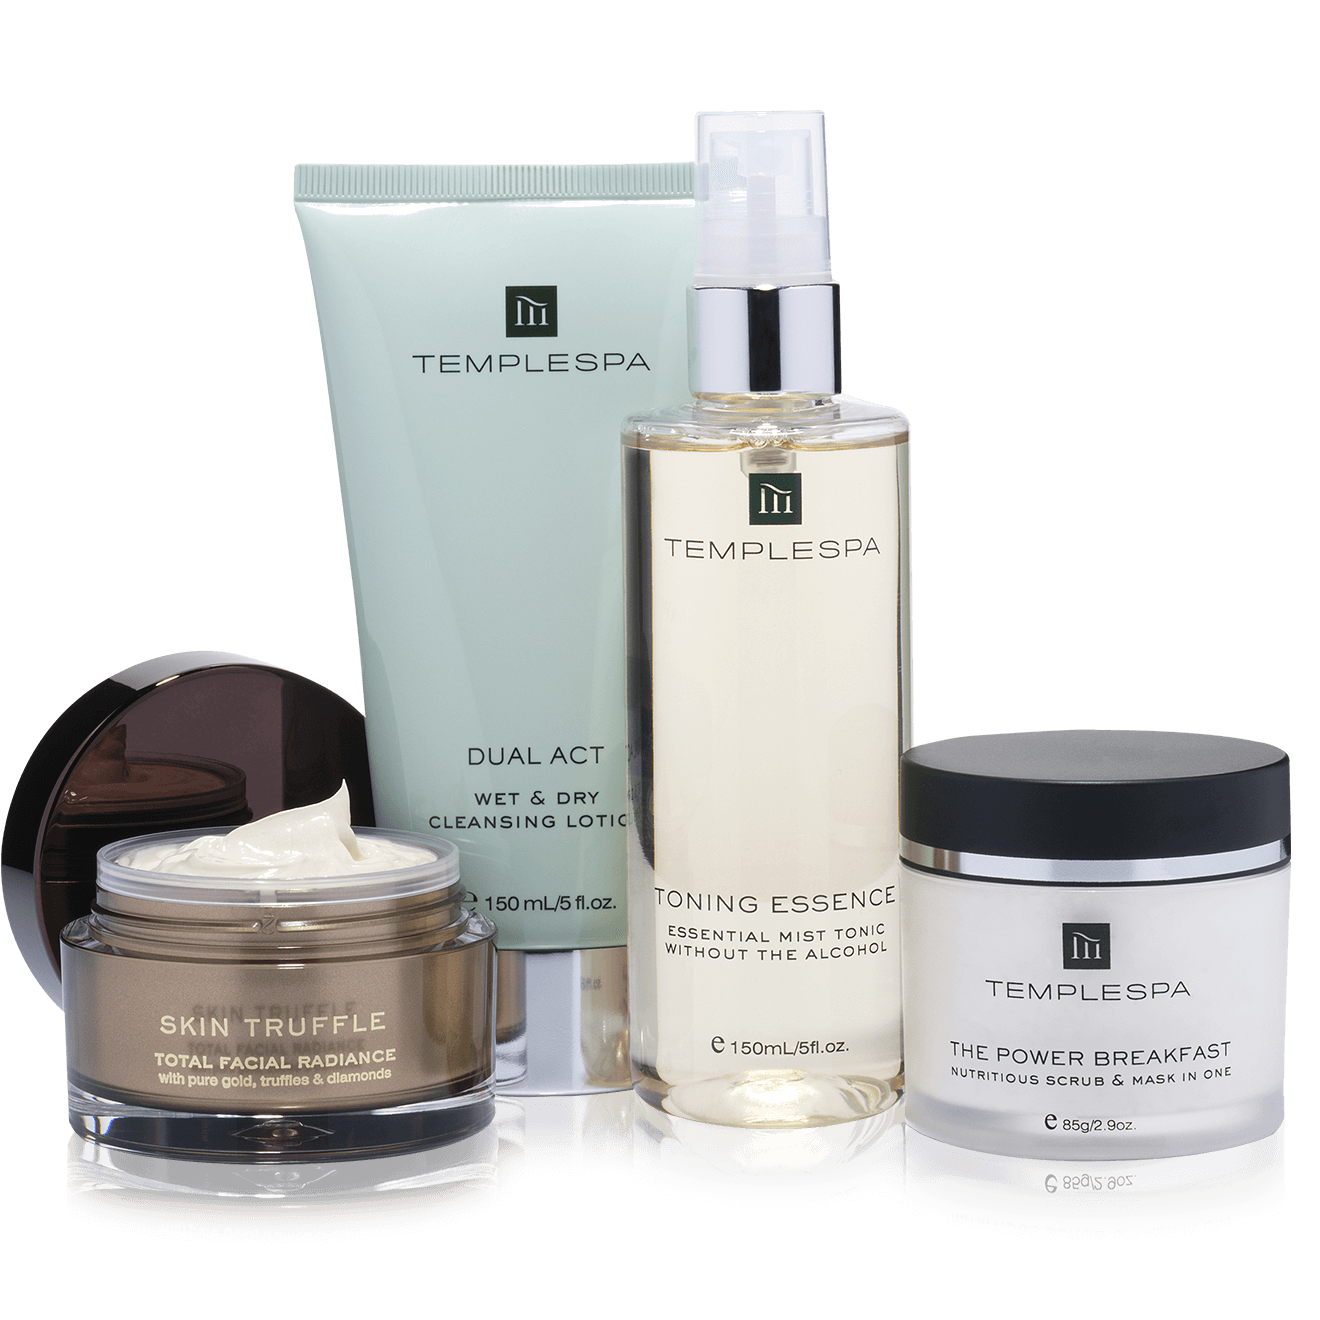 SKIN TRUFFLE ANTI-AGEING COLLECTION